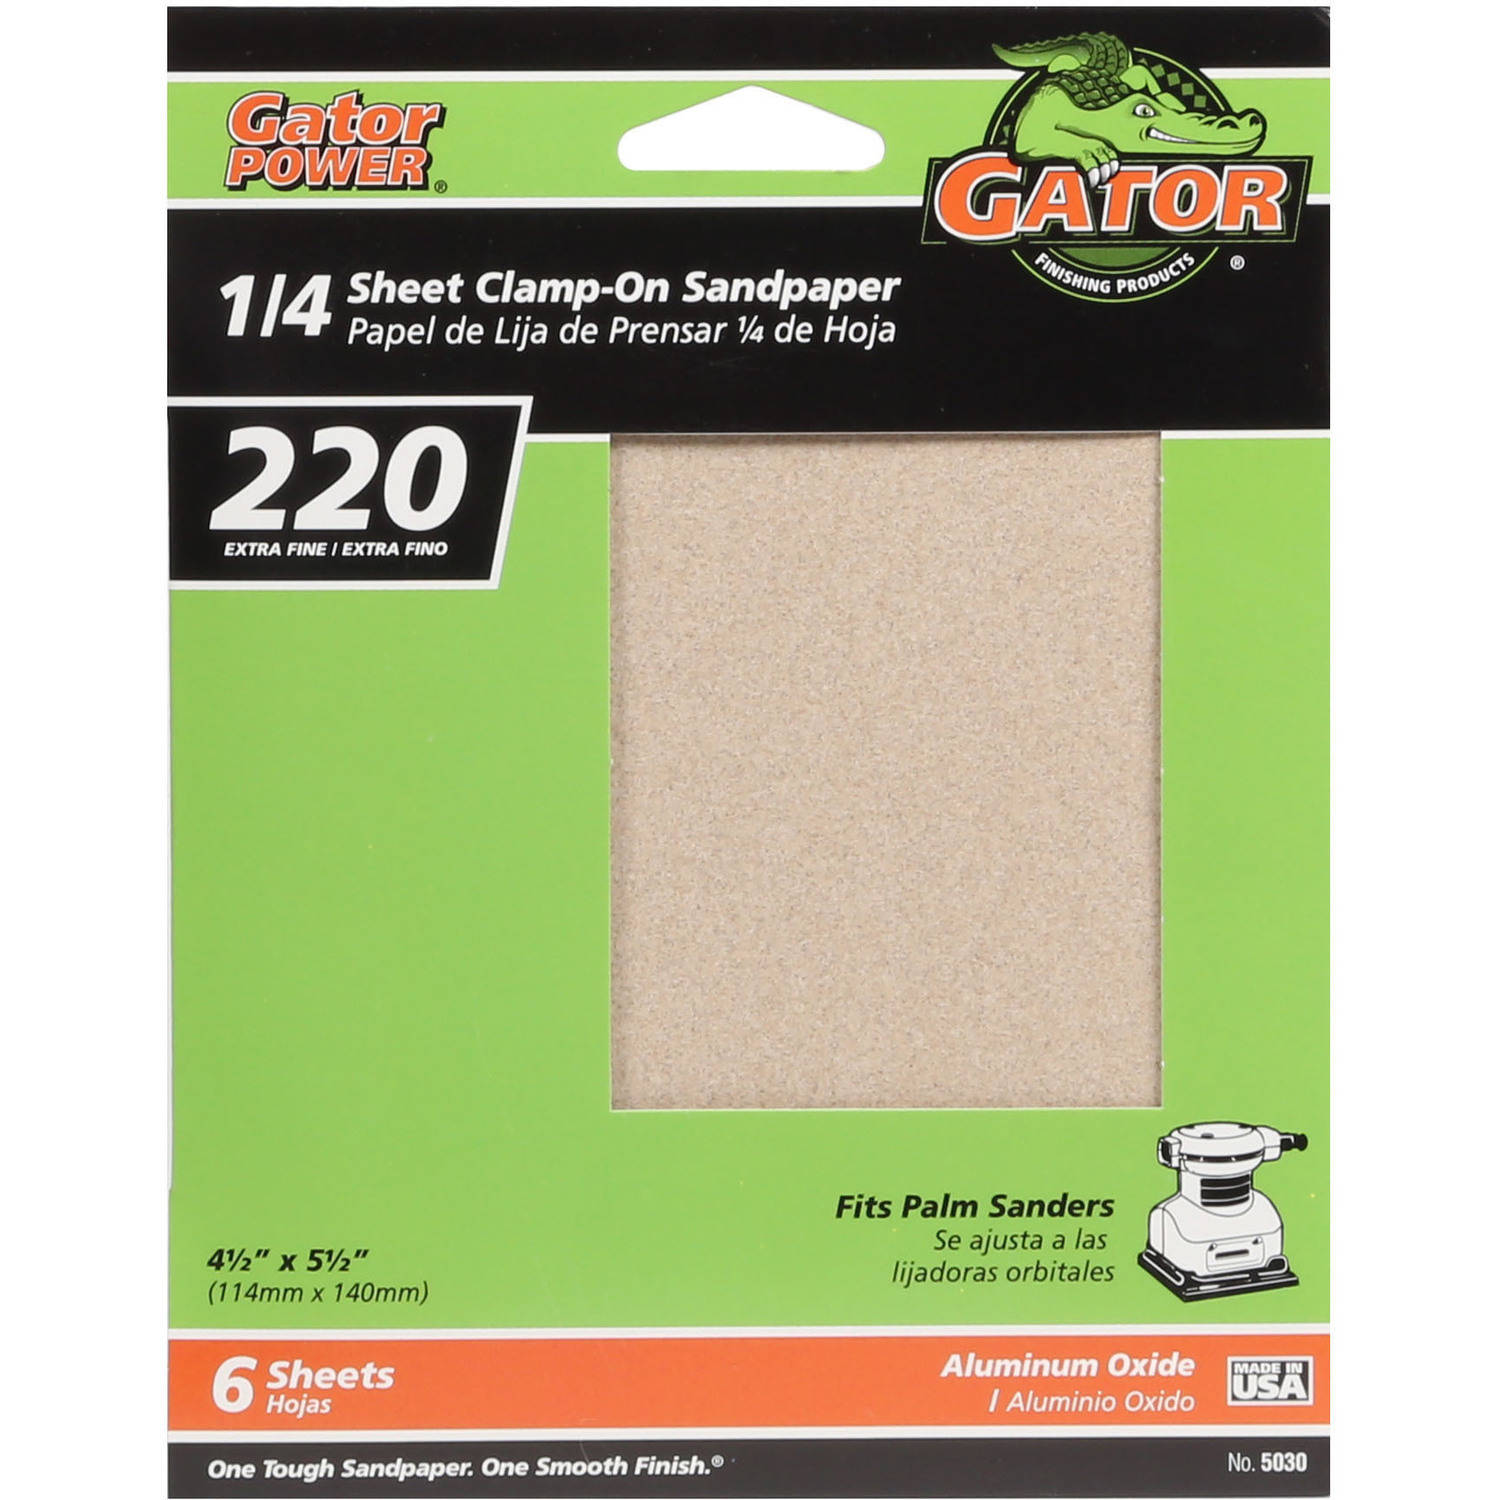 "Gator Grit 4.5"" x 5.5"" 1/4 Sheet Clamp-On Sandpaper, 220G, 6pk"